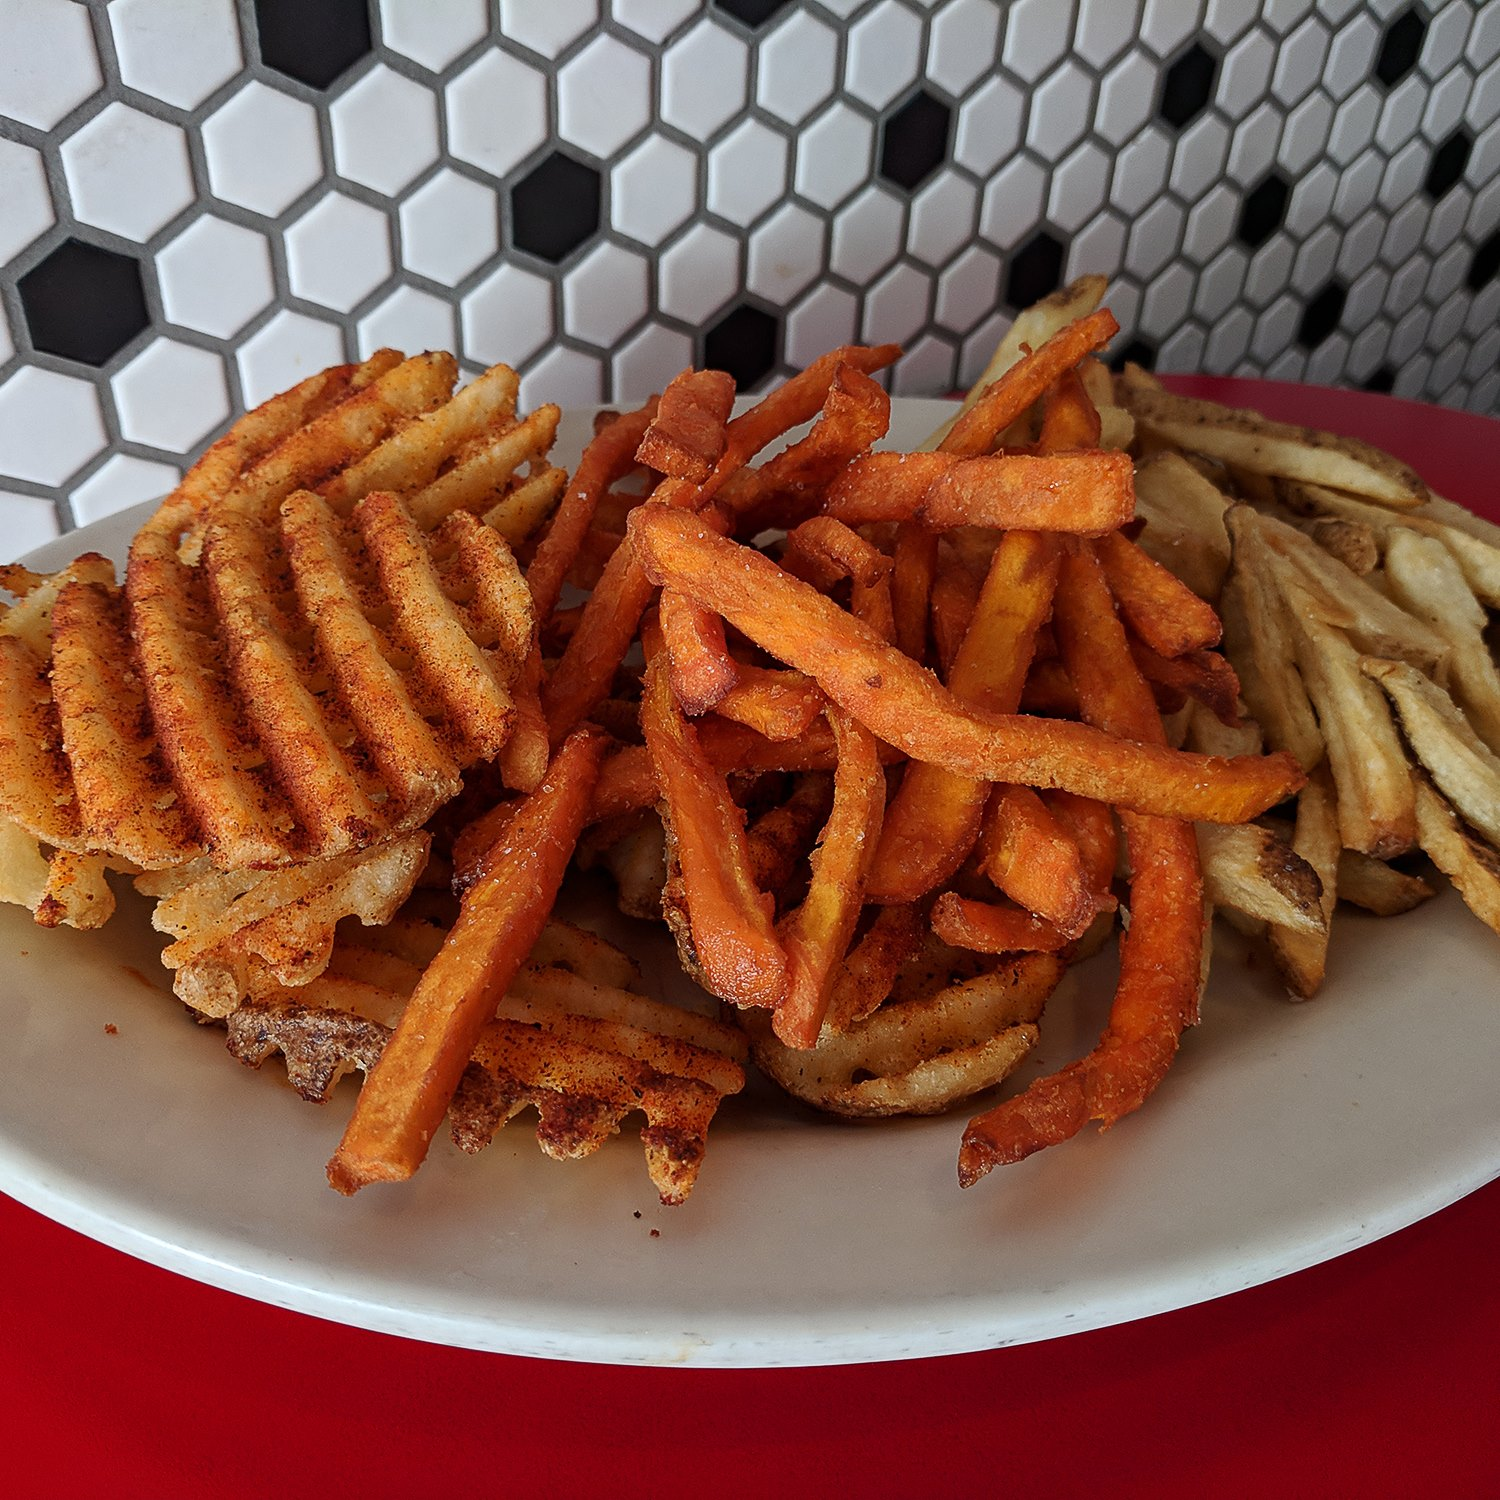 image of seasoned waffle, sweet potato, and normal fries from the chicago diner